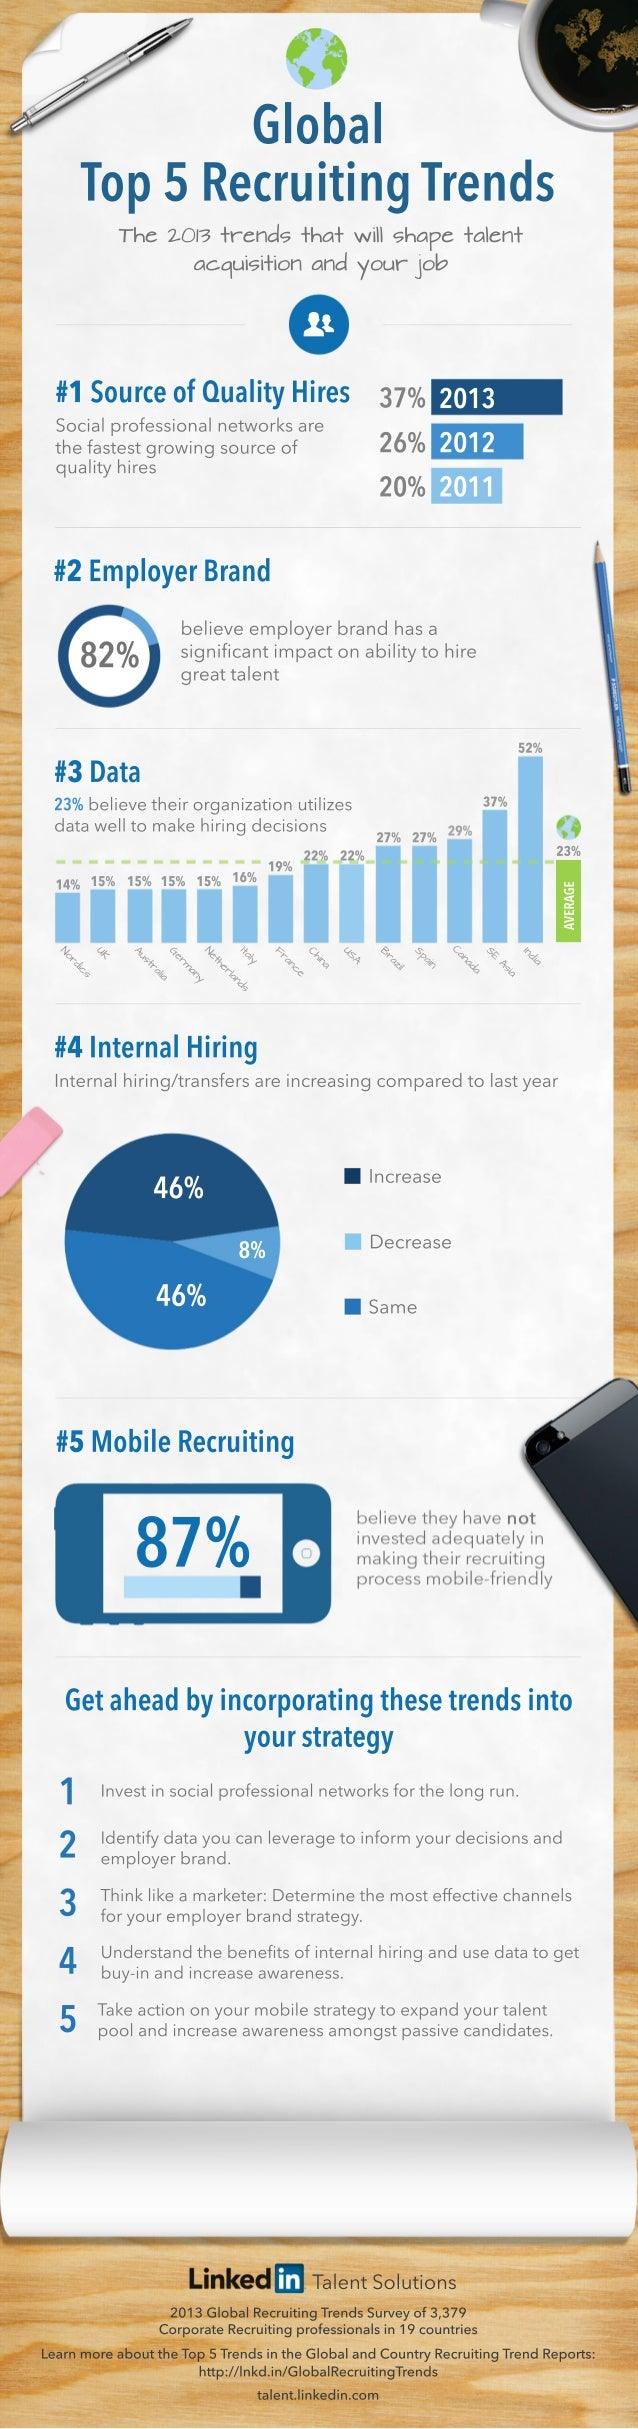 Global Recruiting Trends 2013 Infographic | English